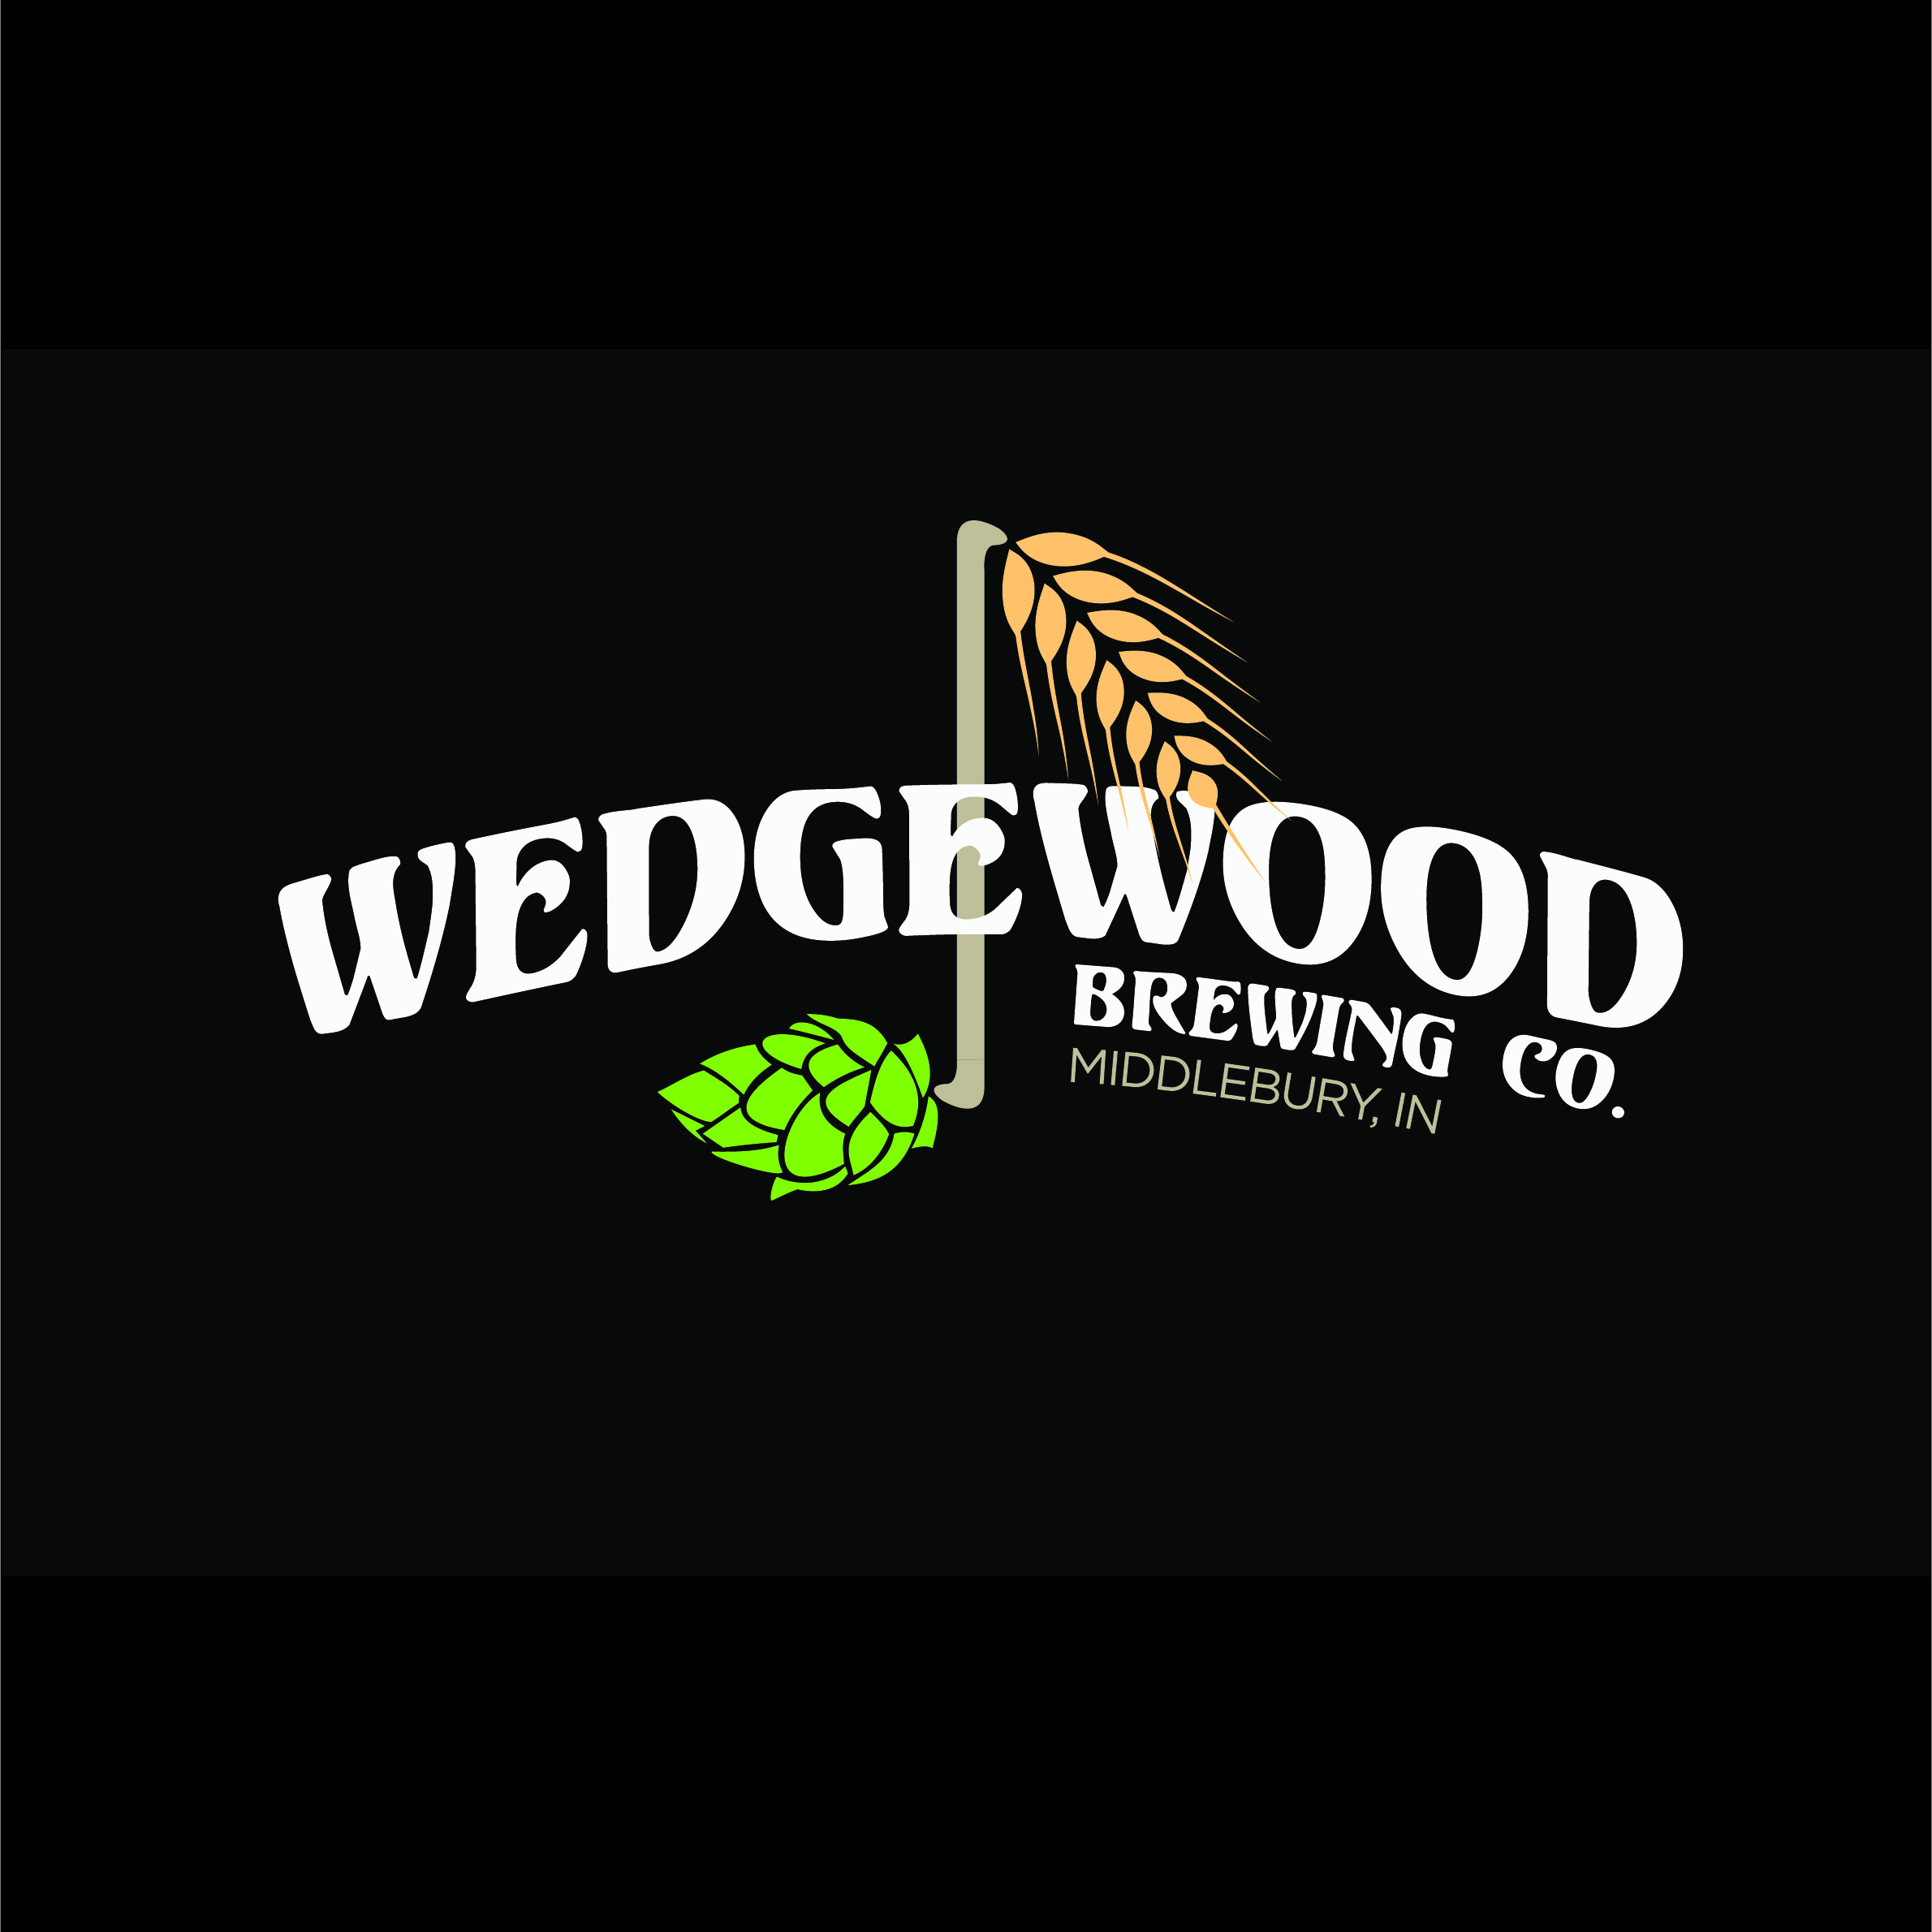 wedgewood brewing